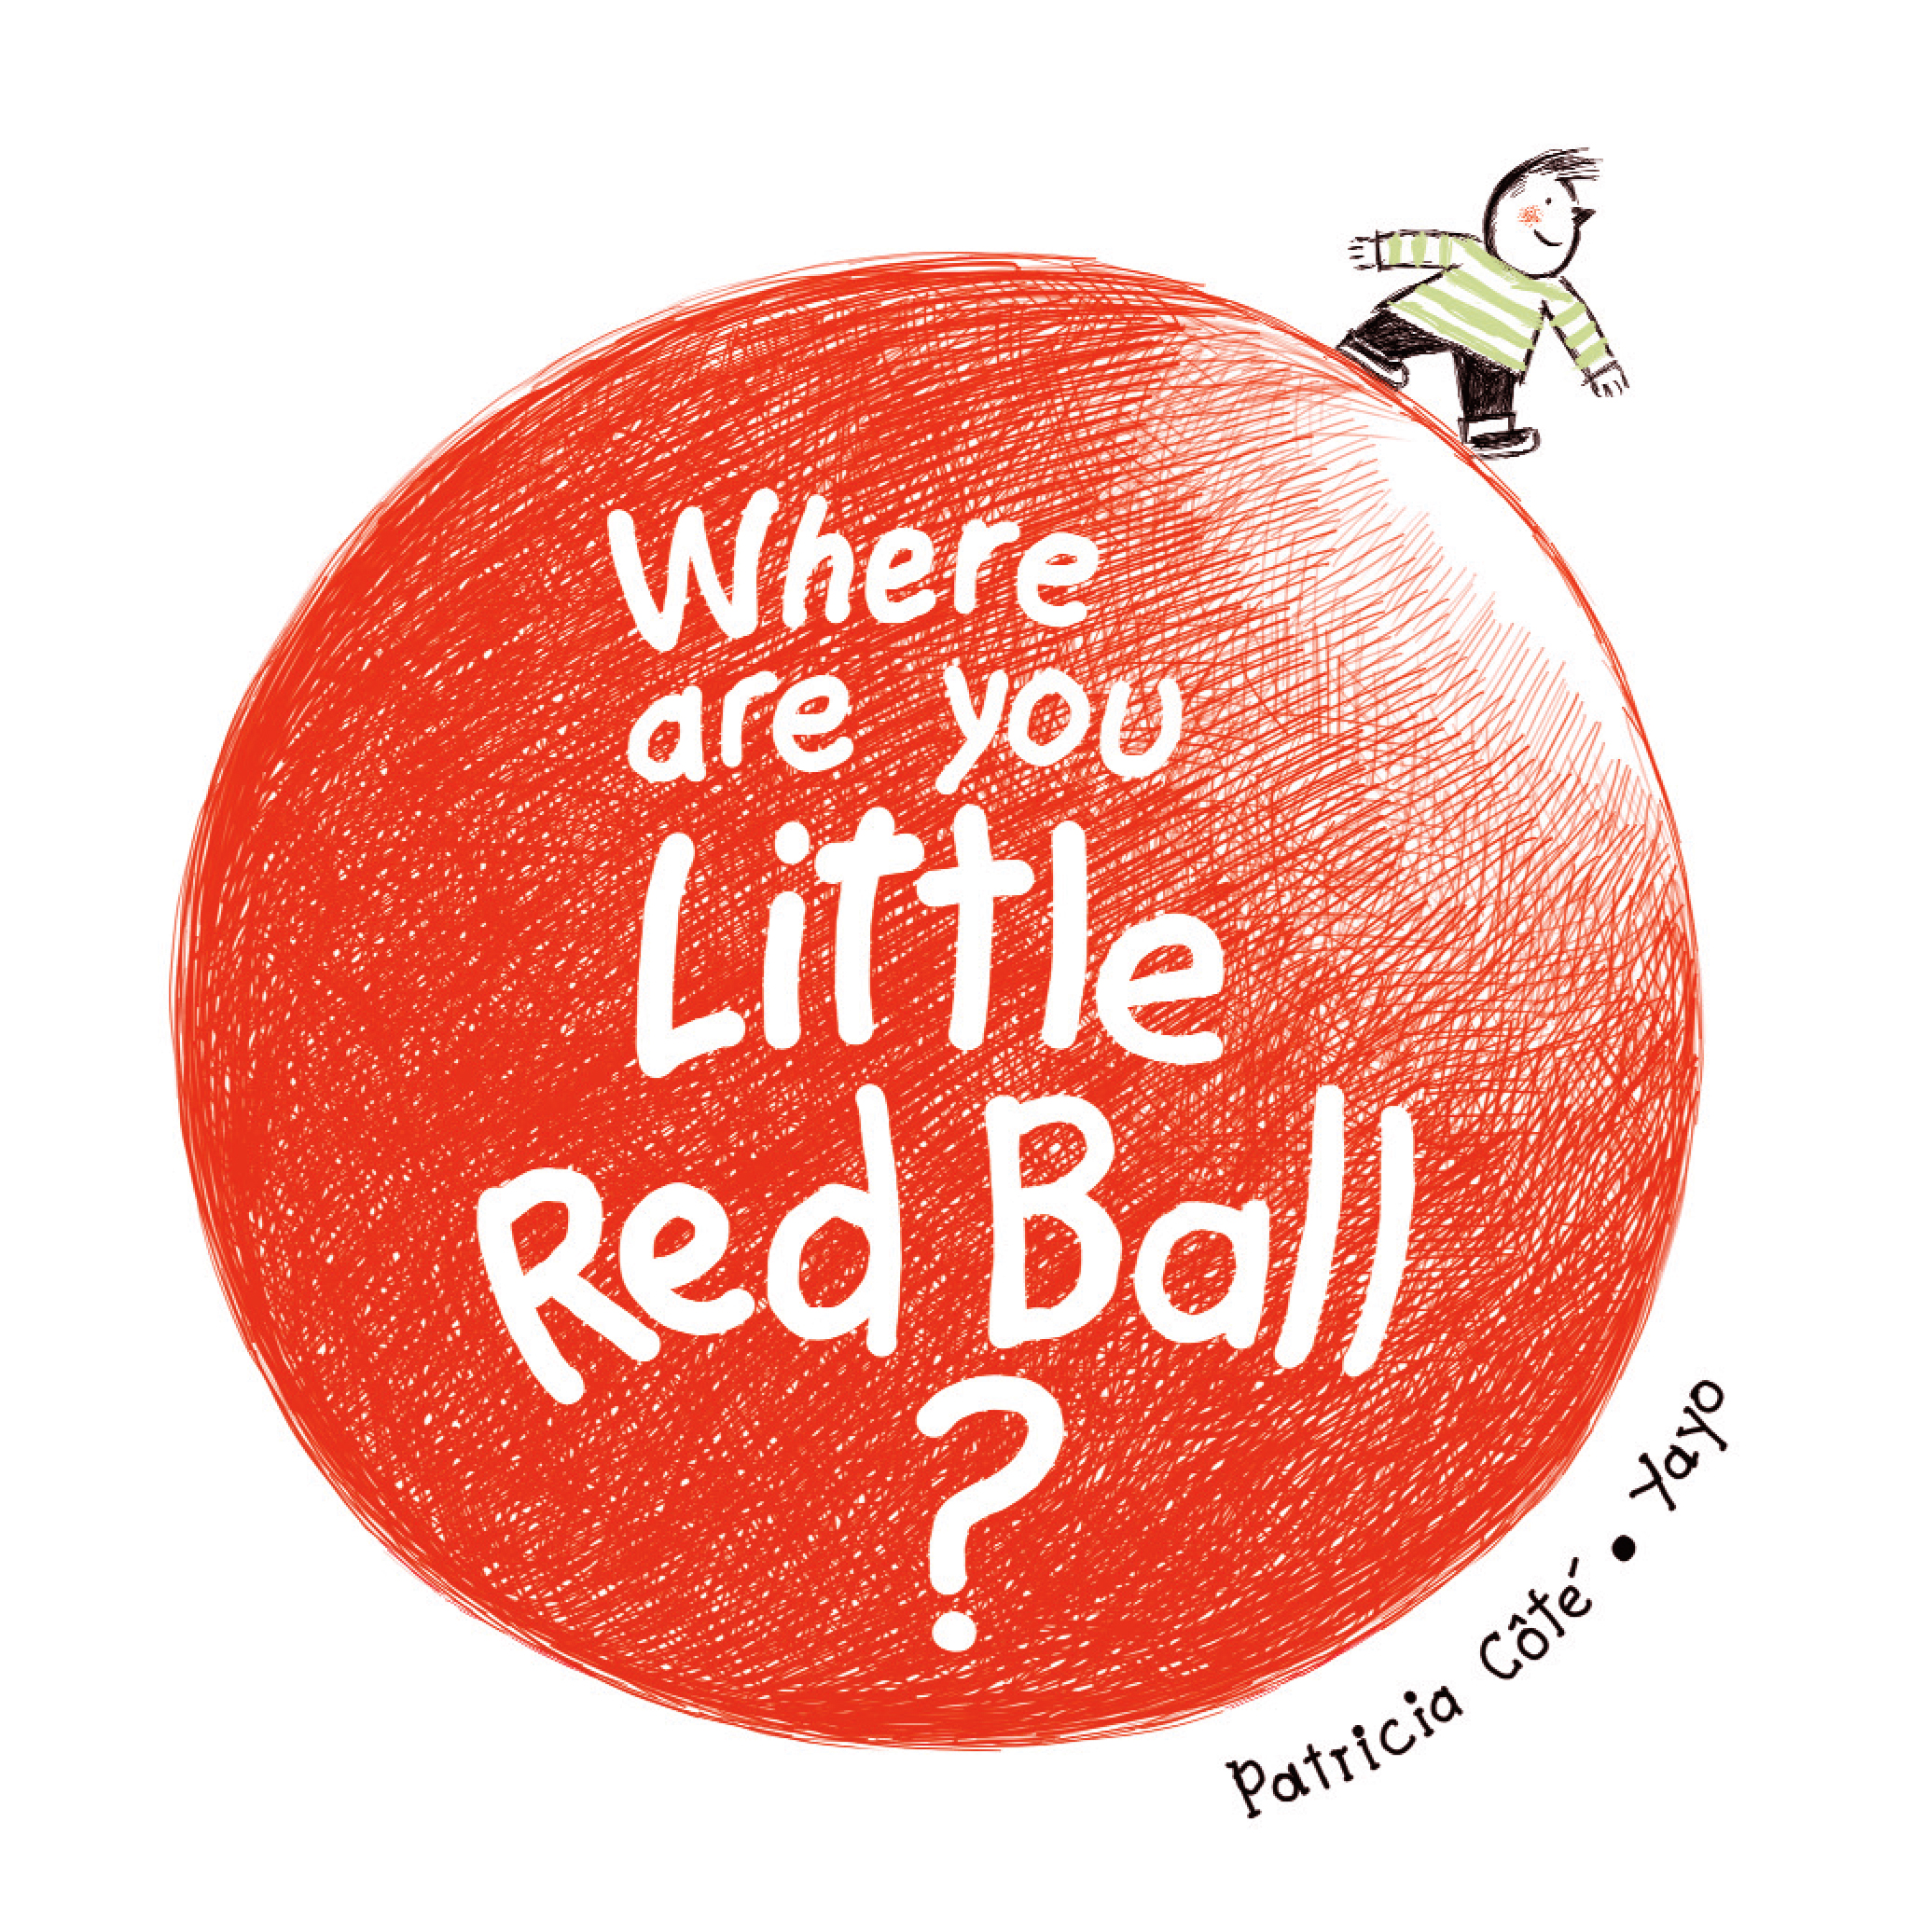 small red ball